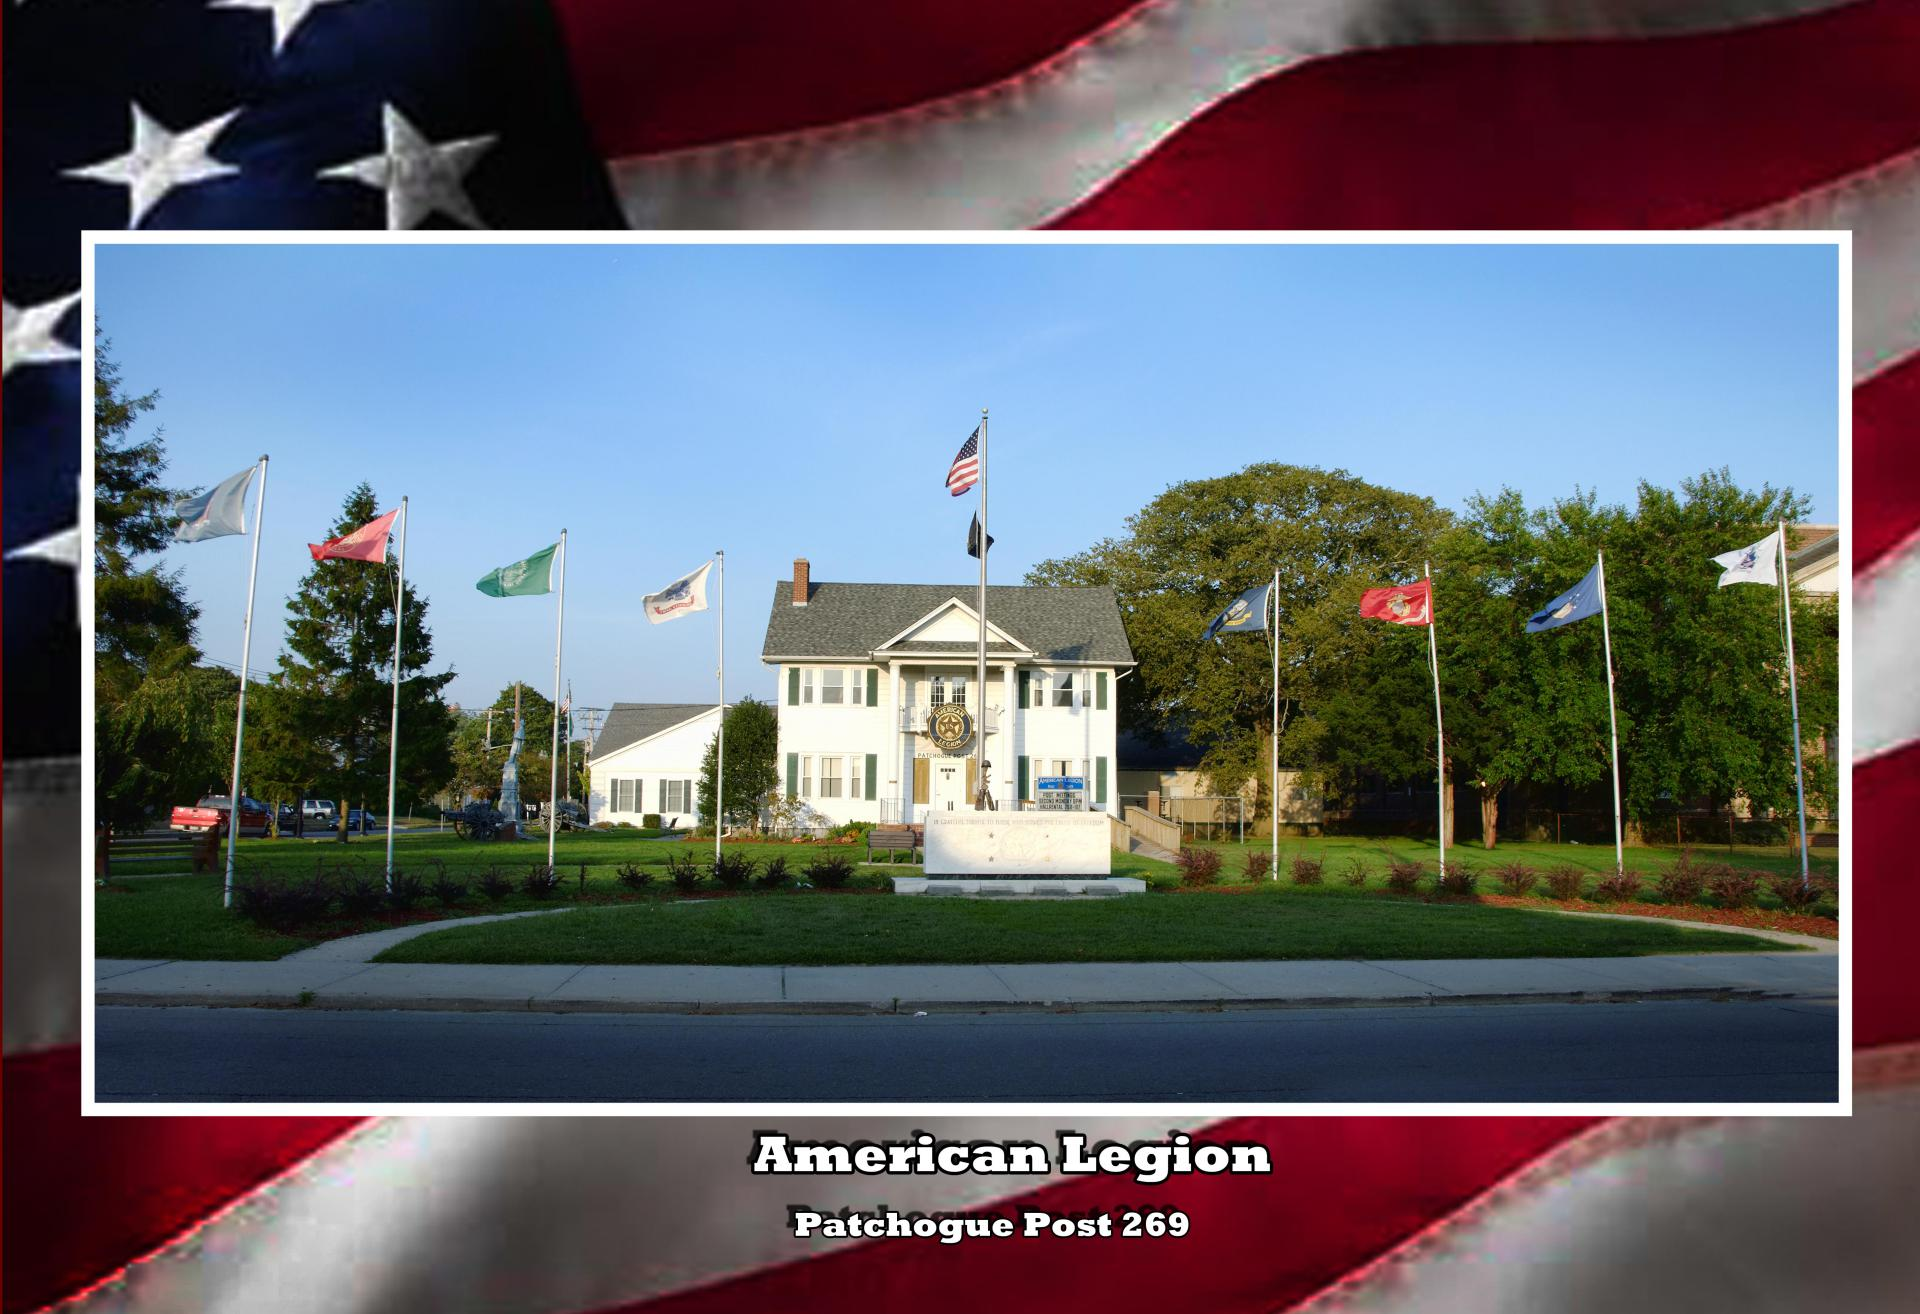 American Legion Patchogue NY Post 269 - Contact